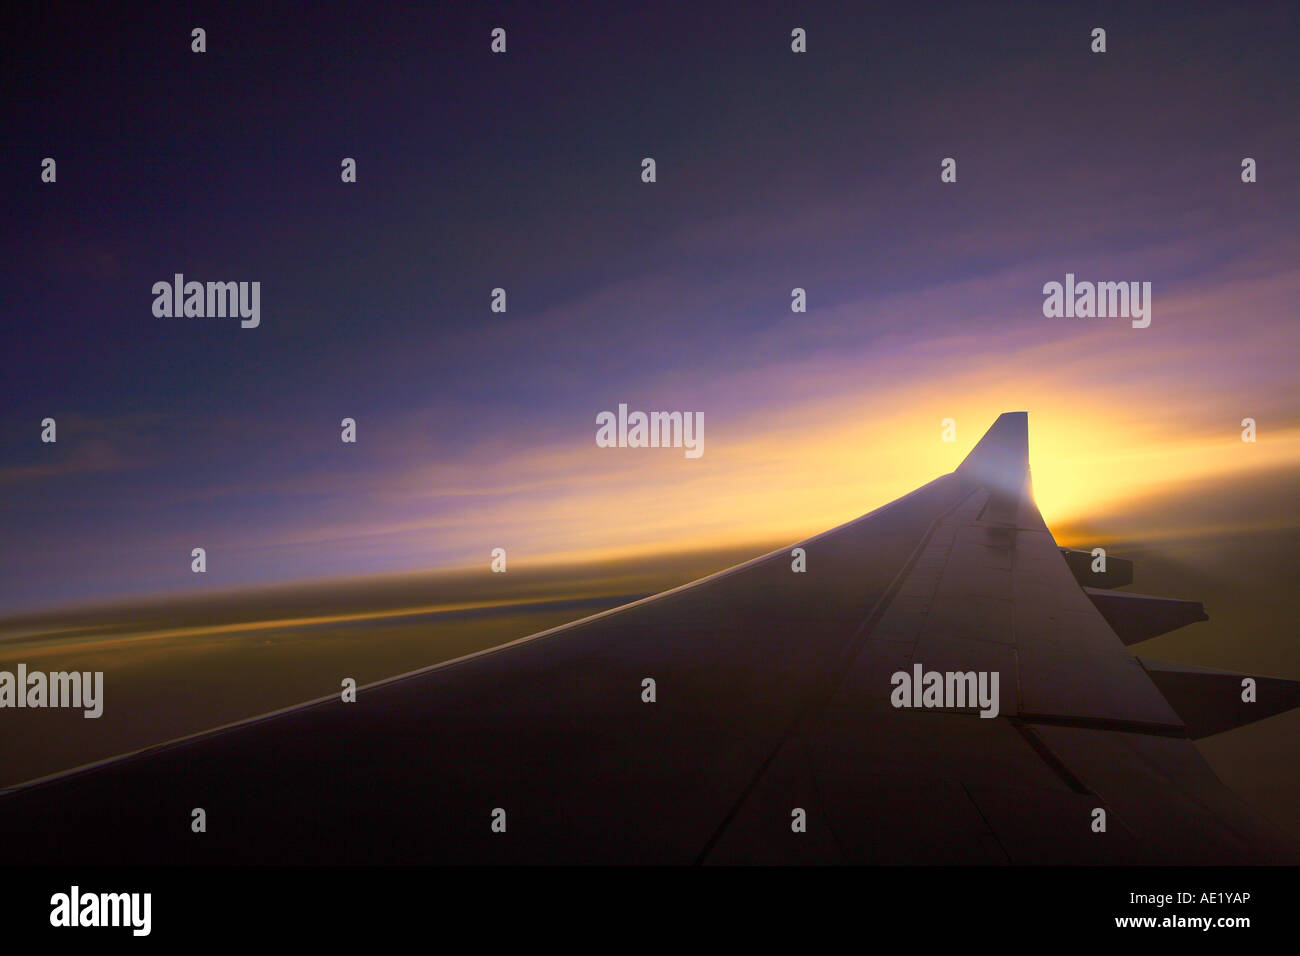 An aerial view from an airplane window near the wing. Stock Photo